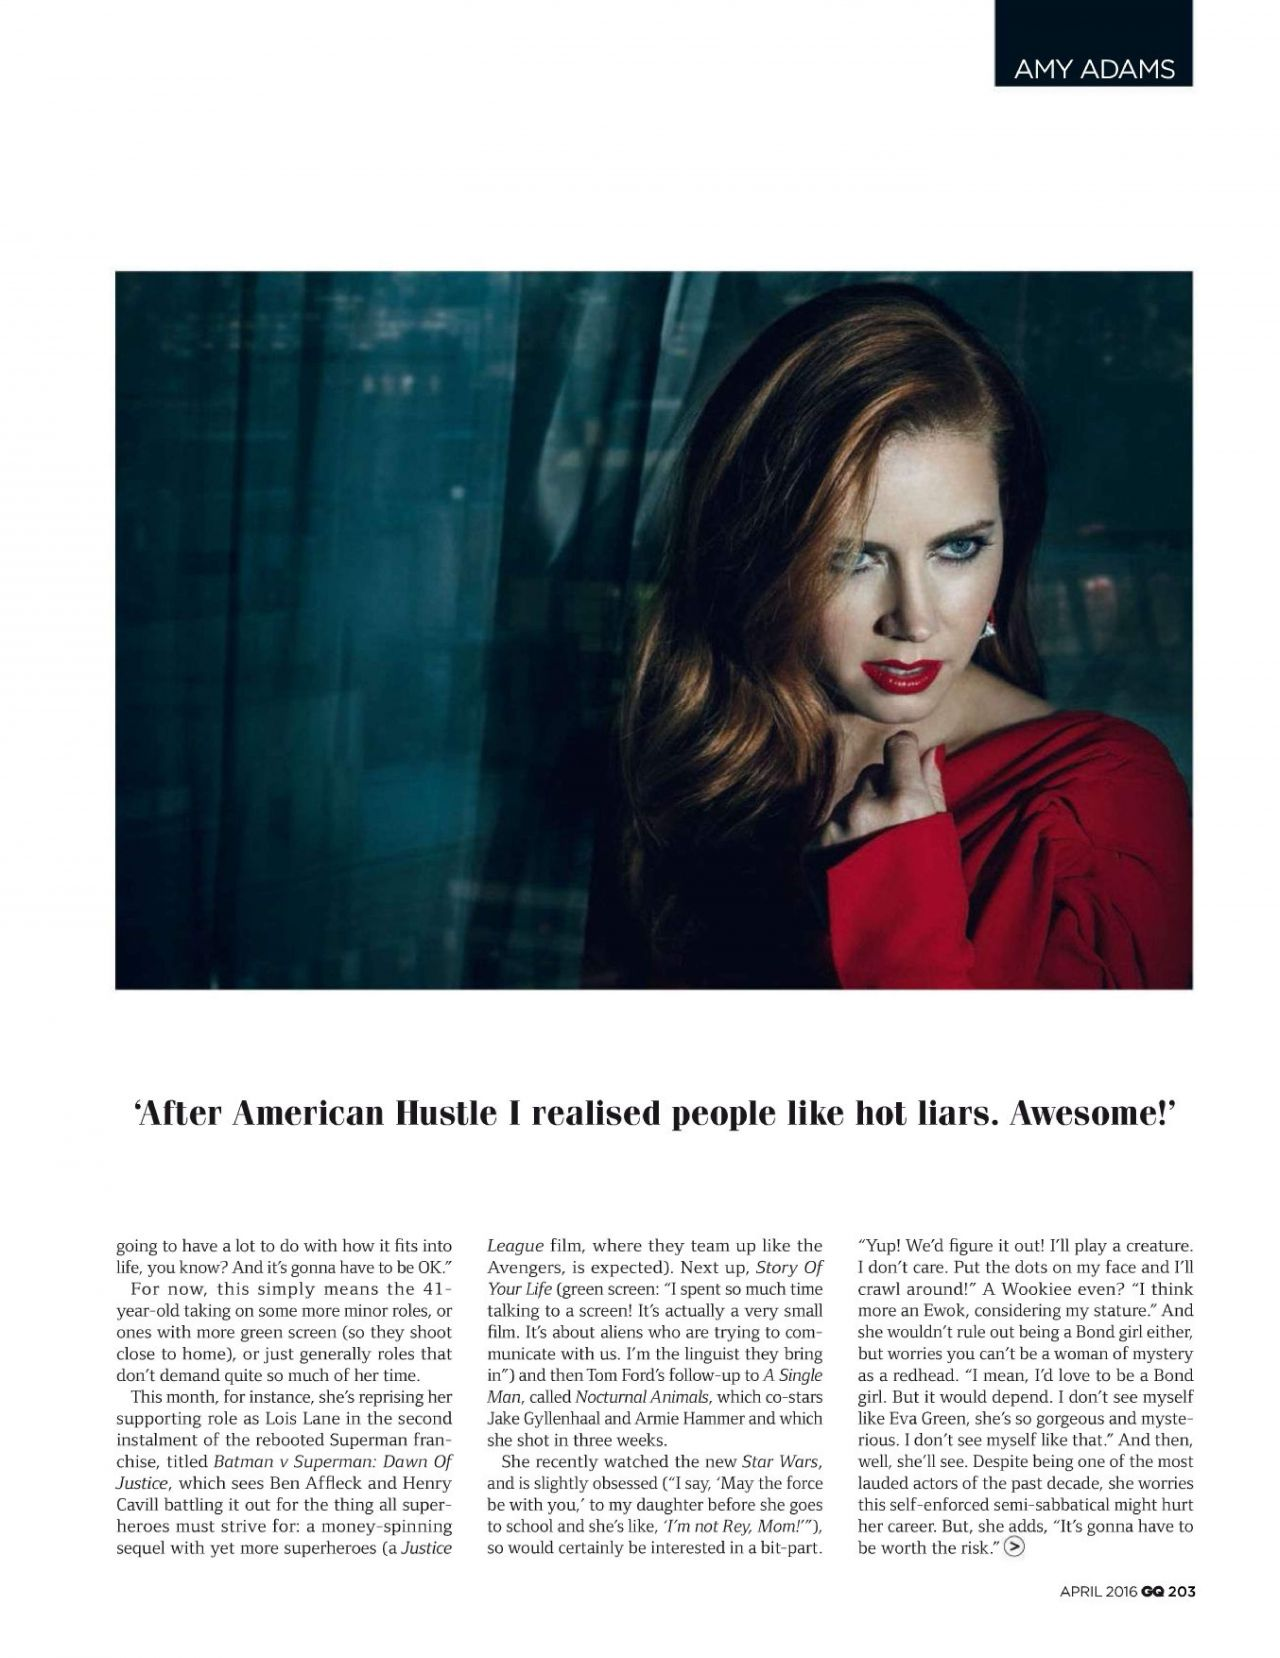 Amy Adams by Norman Jean Roy for GQ UK April 2016 / AvaxHome